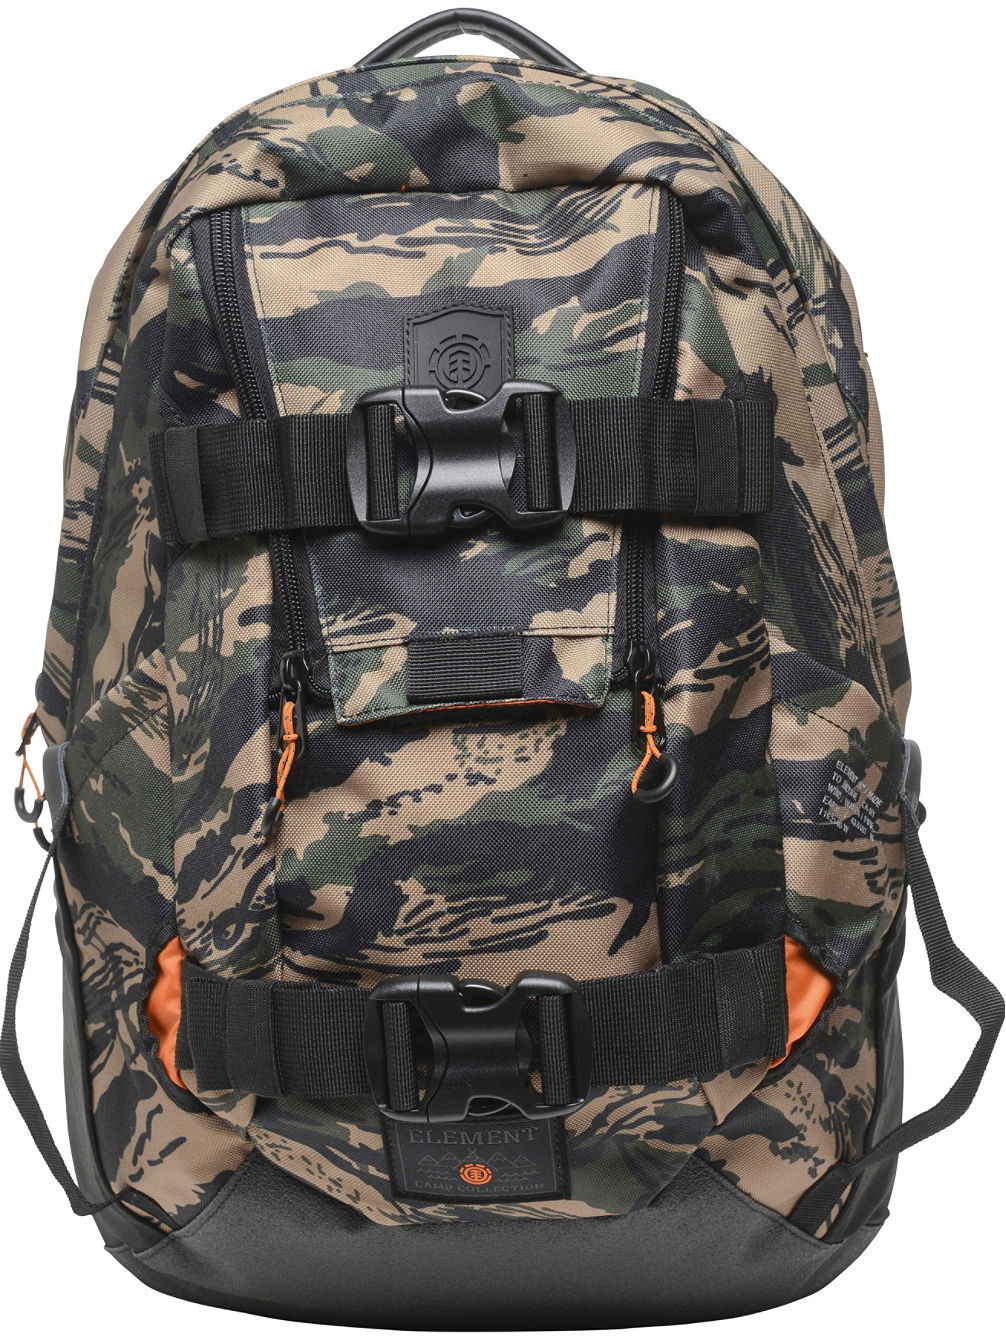 The Daily Rucksack